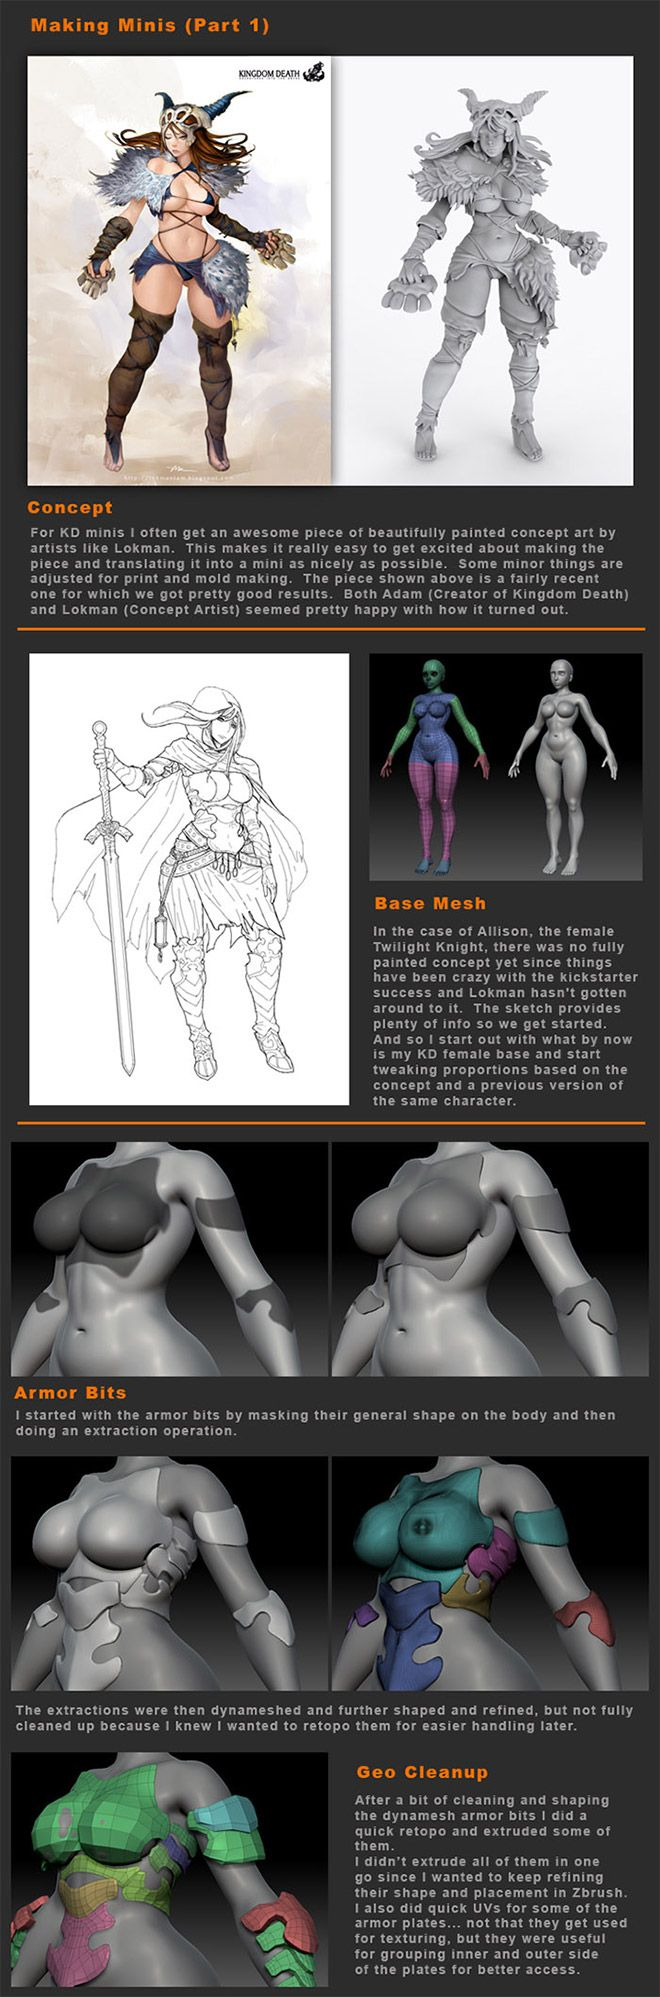 Making-of-Kingdom-Death-Minis-by-Hector-Moran1